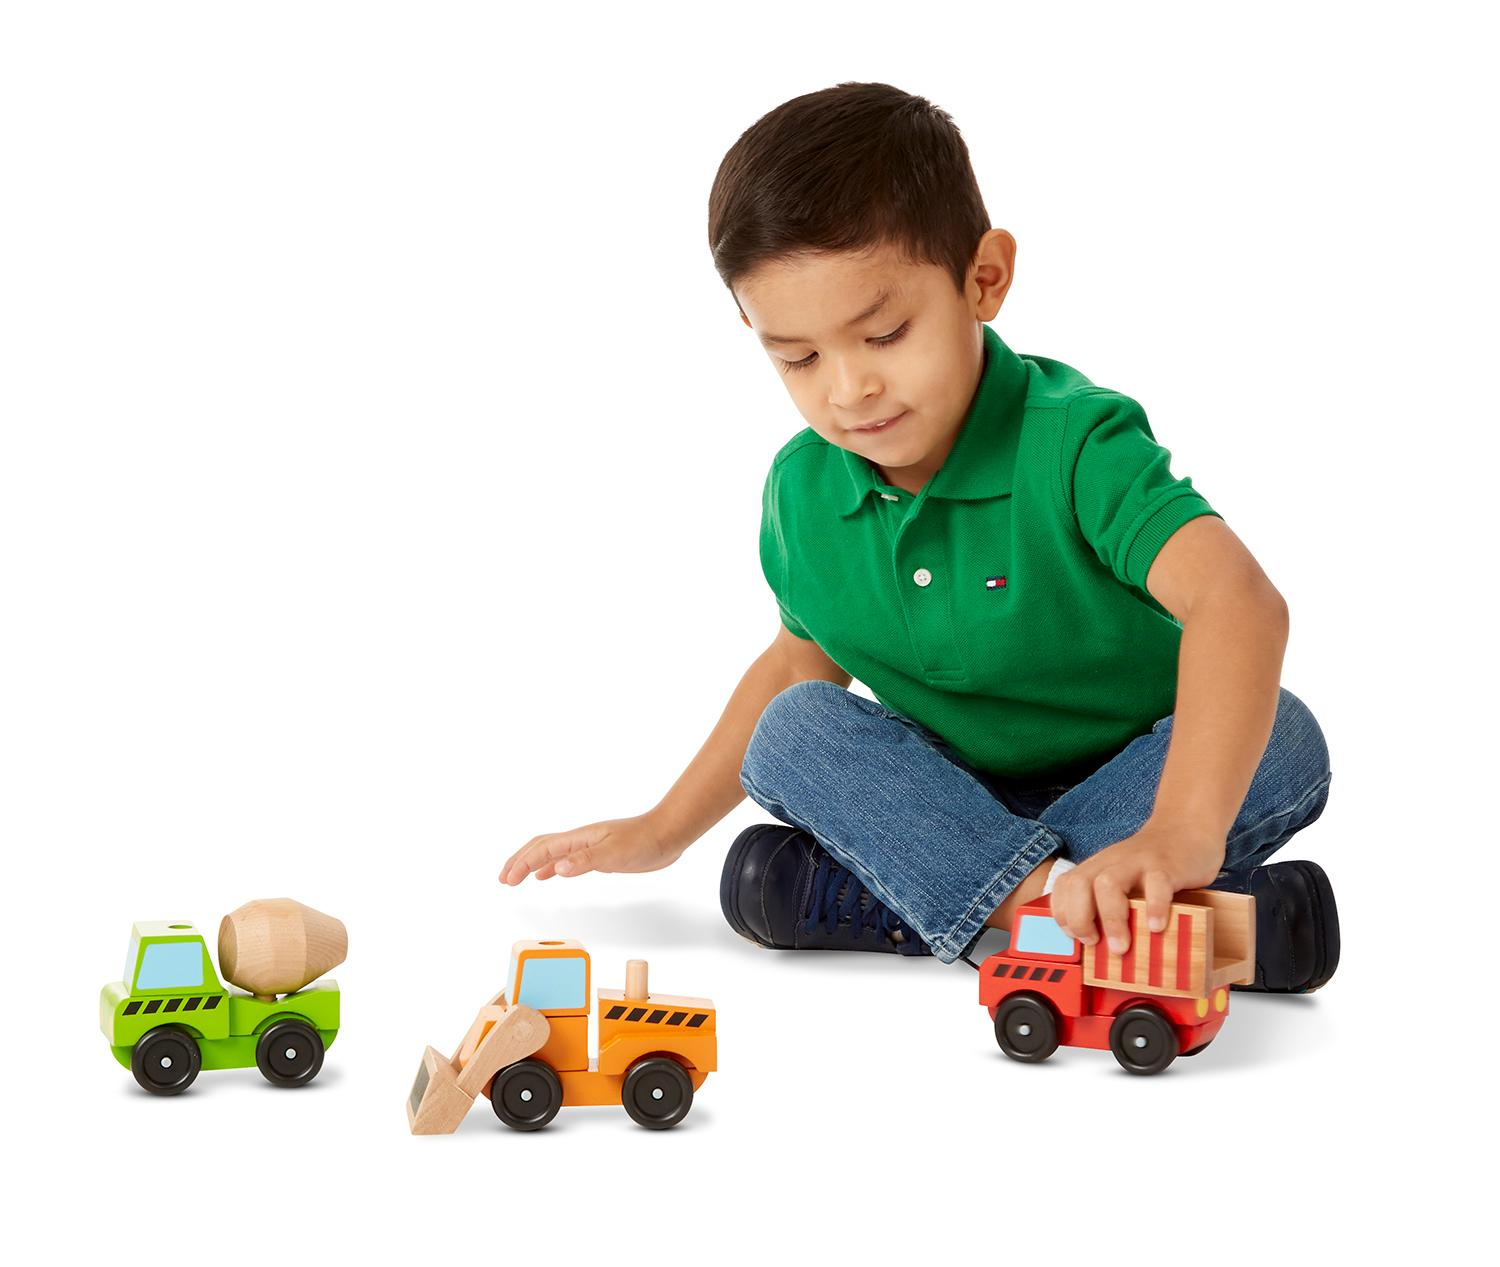 Toys For Boys 2 4 : Toys for year old boys deals on blocks